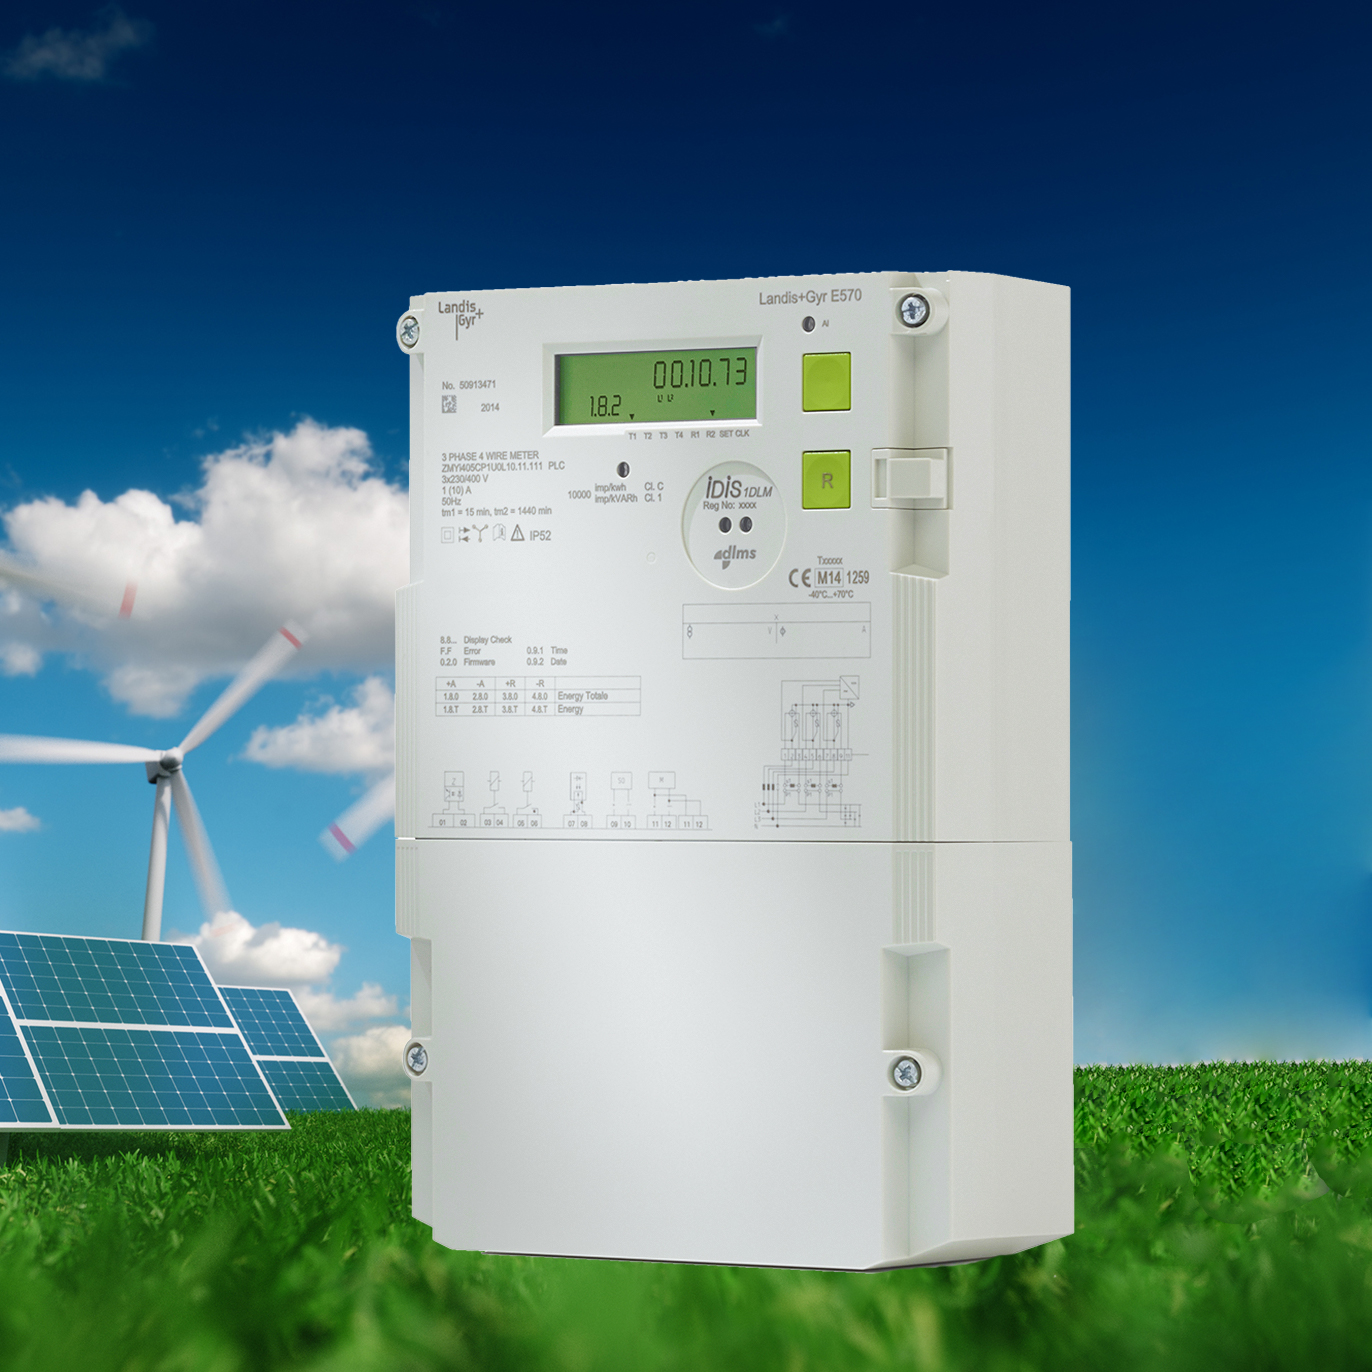 E570: Our New Smart Commercial Electricity Meter Explained in Two Minutes